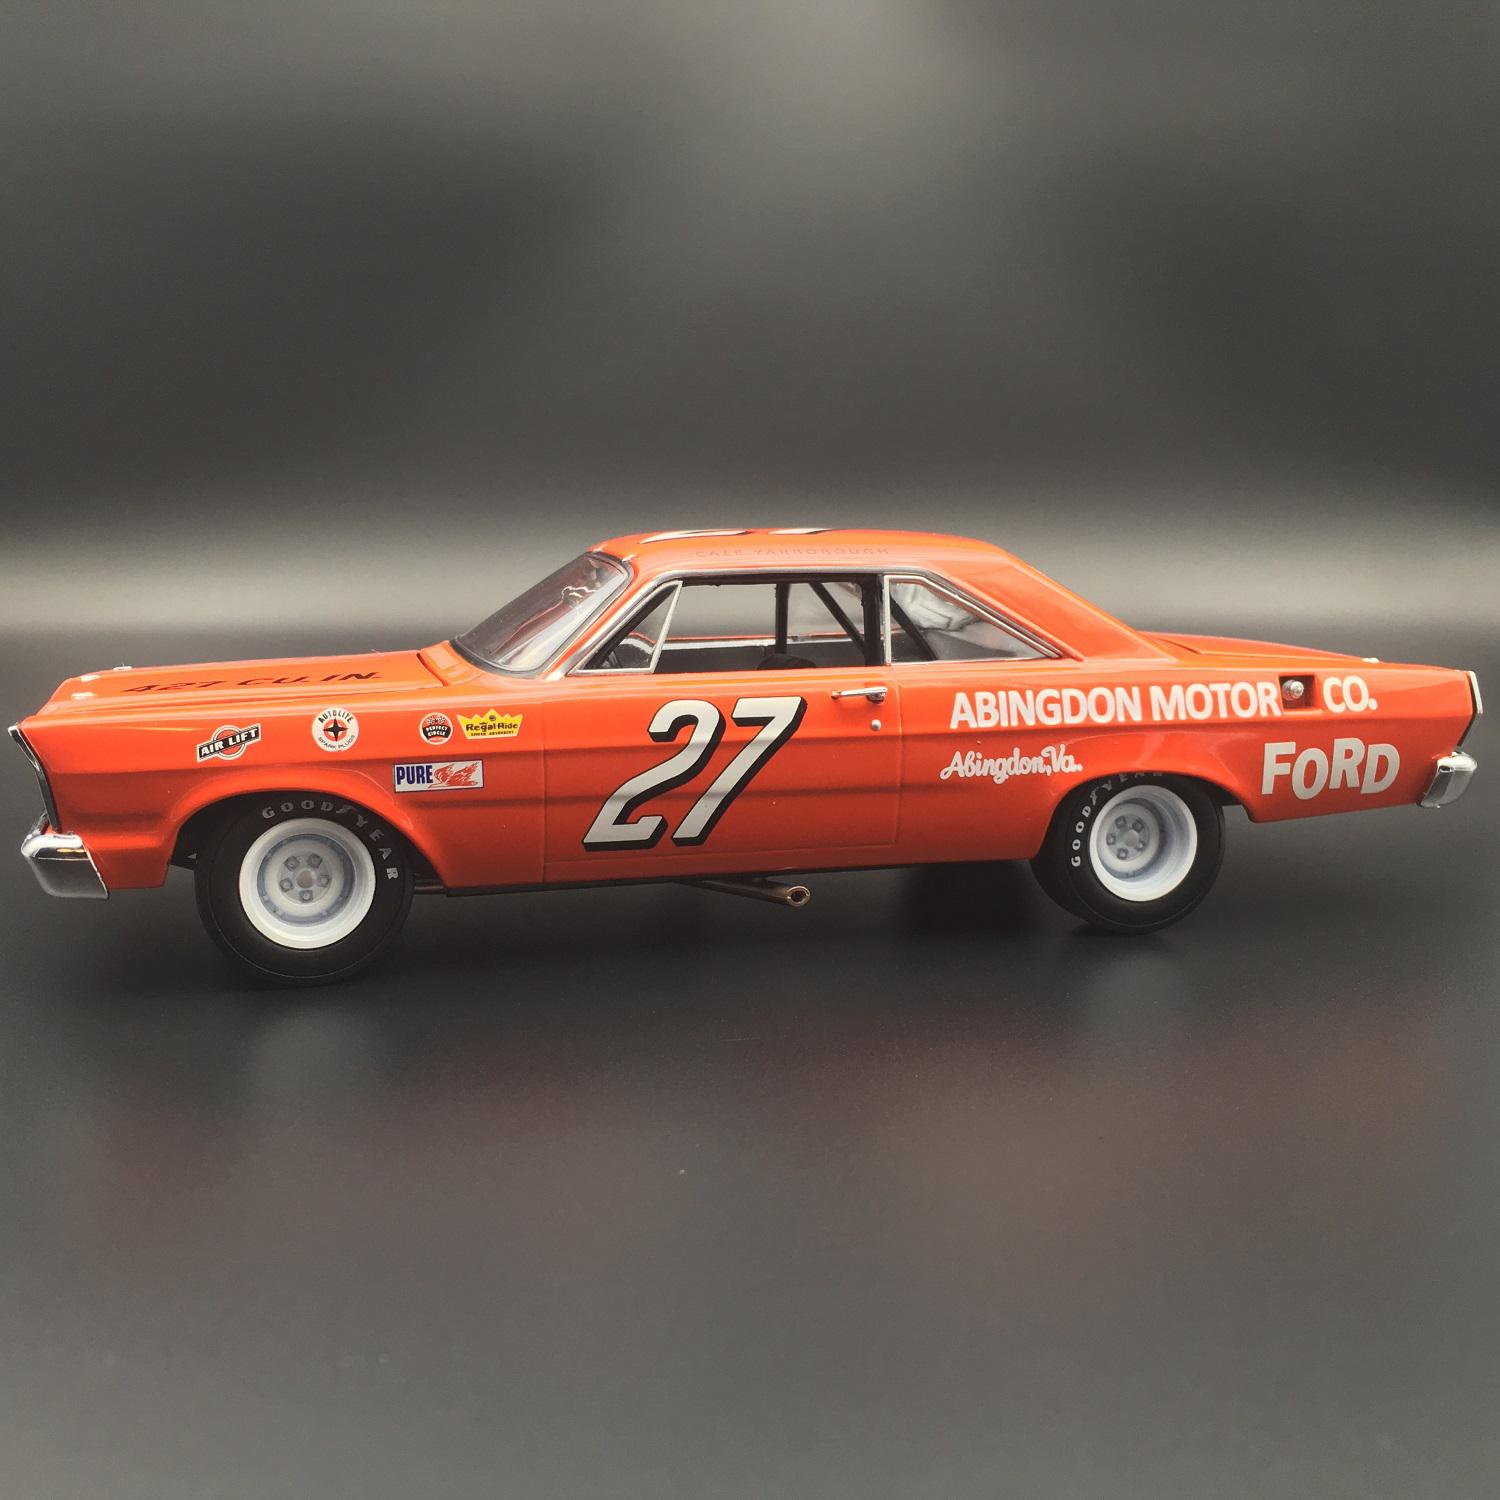 Cale Yarborough 1965 Abingdon Motor Co Ford Galaxie Signed 1:24 University Of Racing Diecast